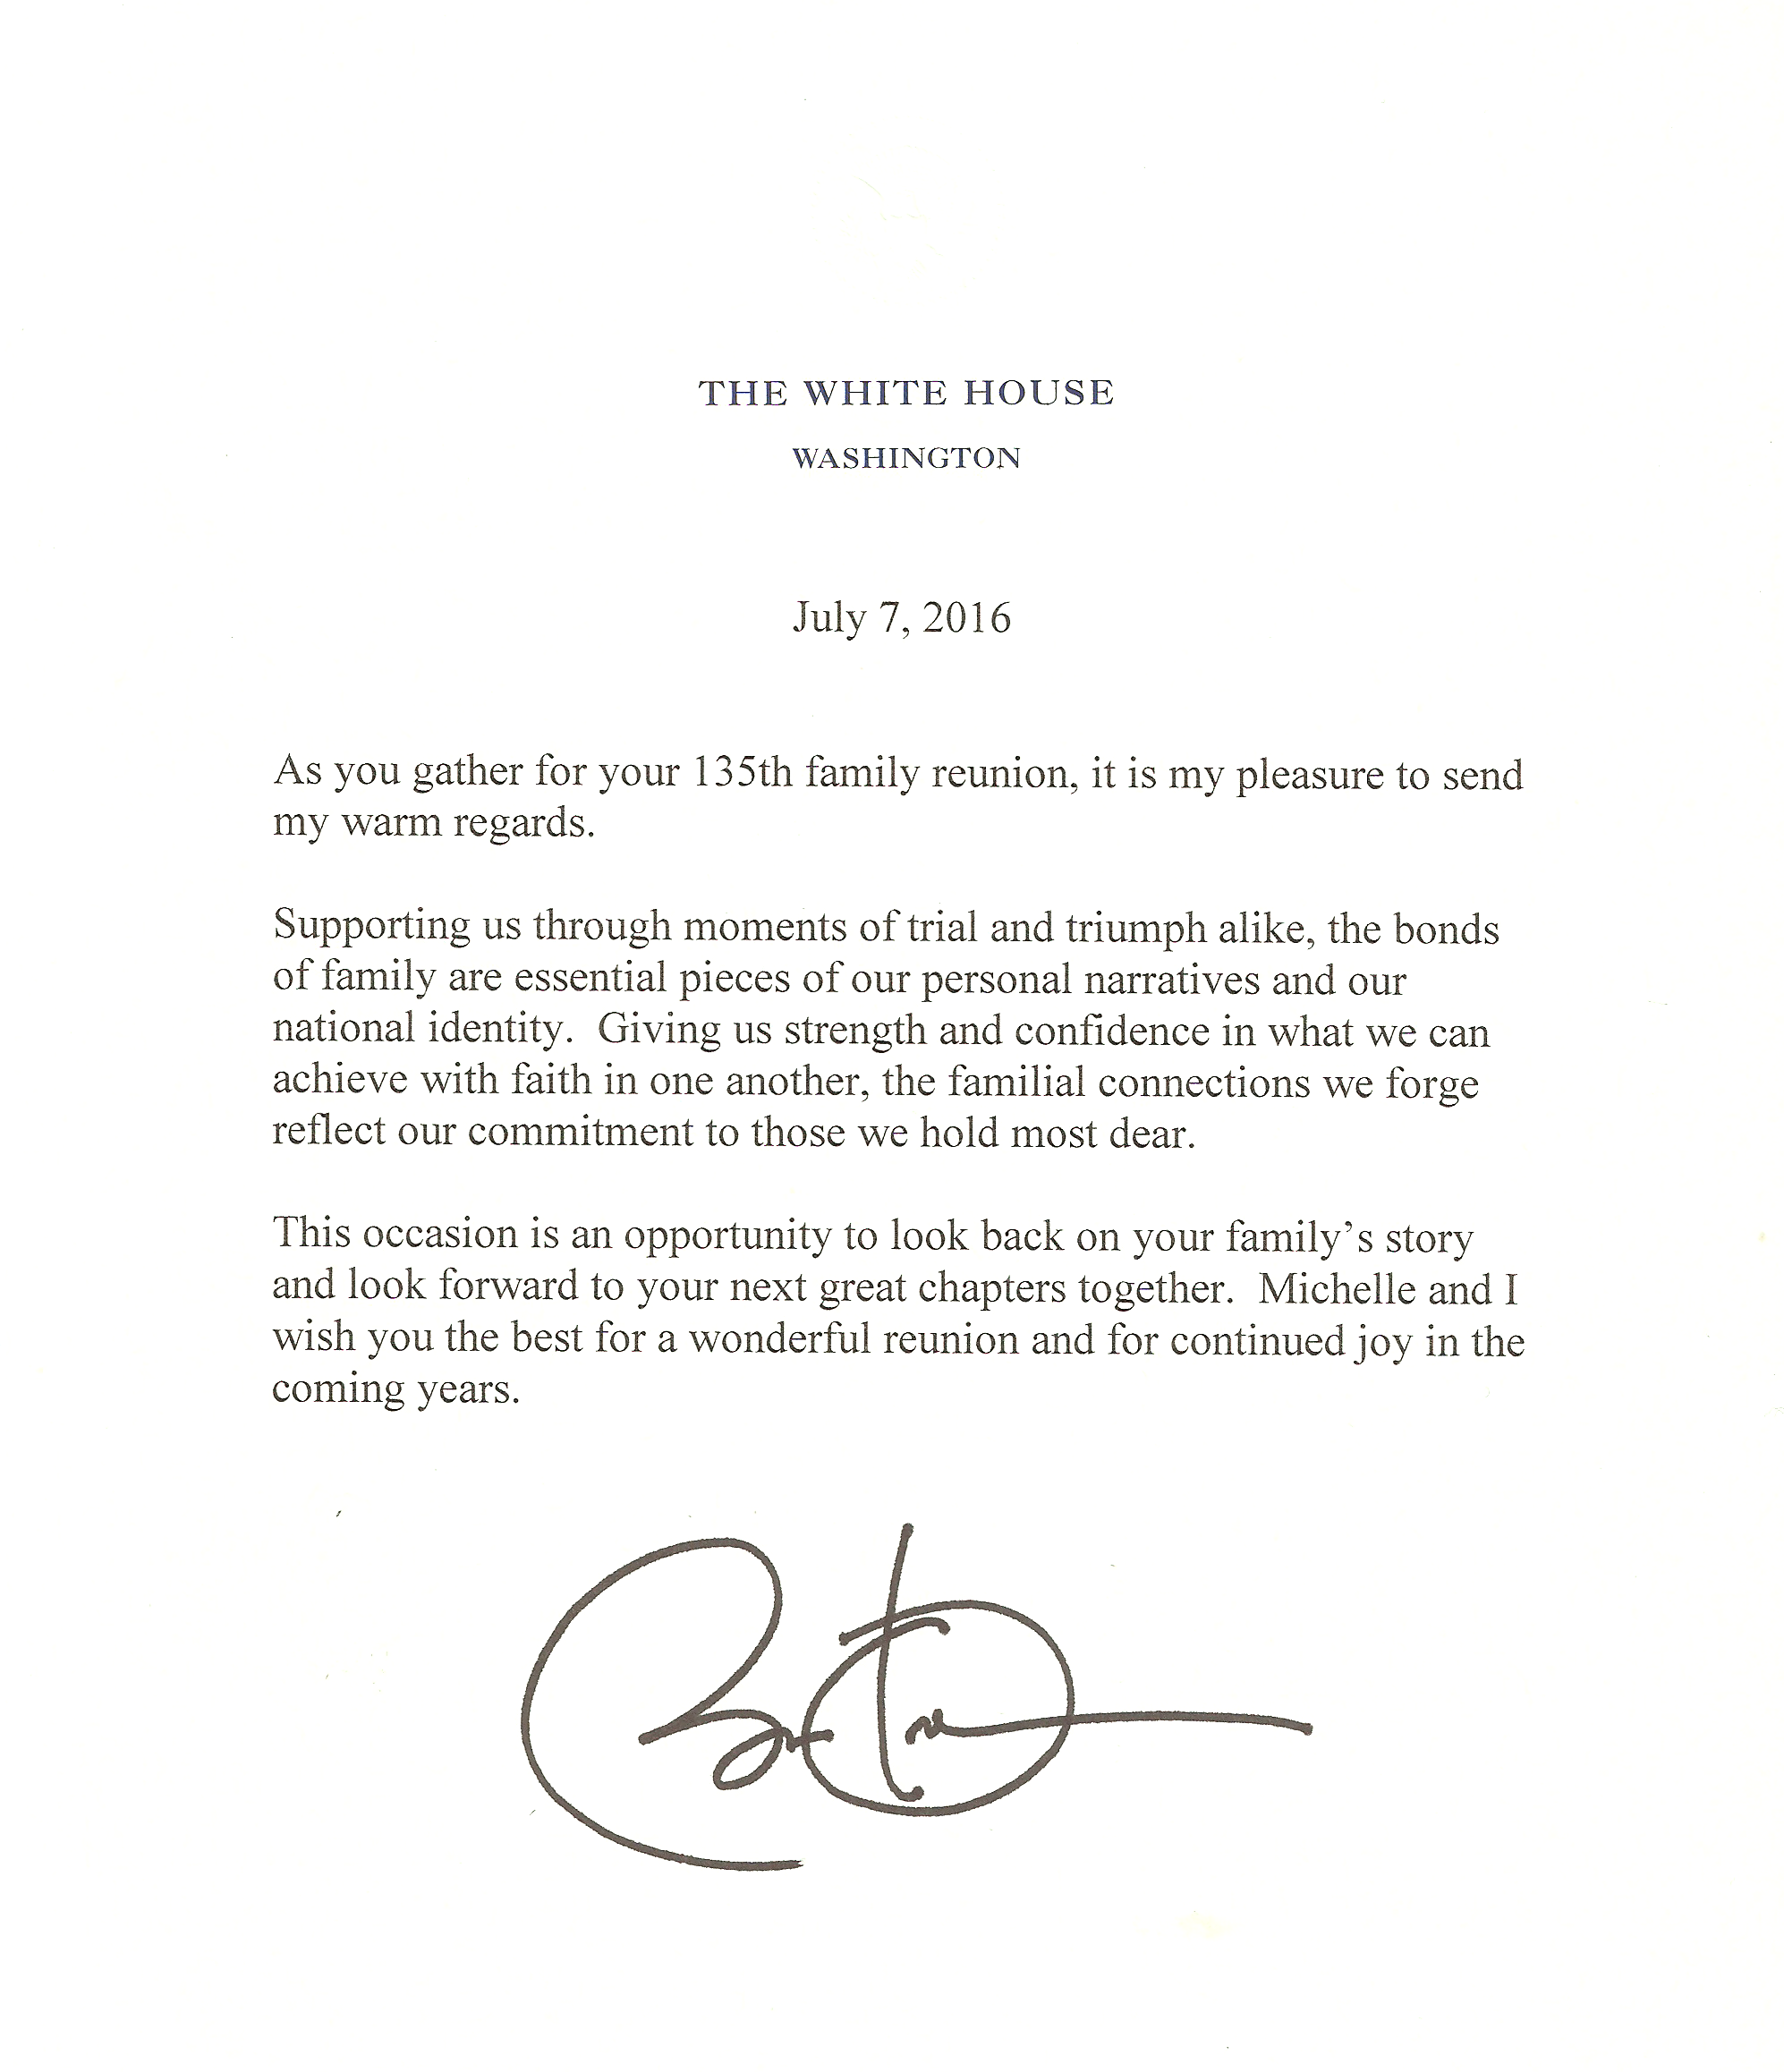 7-7-2016 letter from Barack Obama to Schmidt Reunion